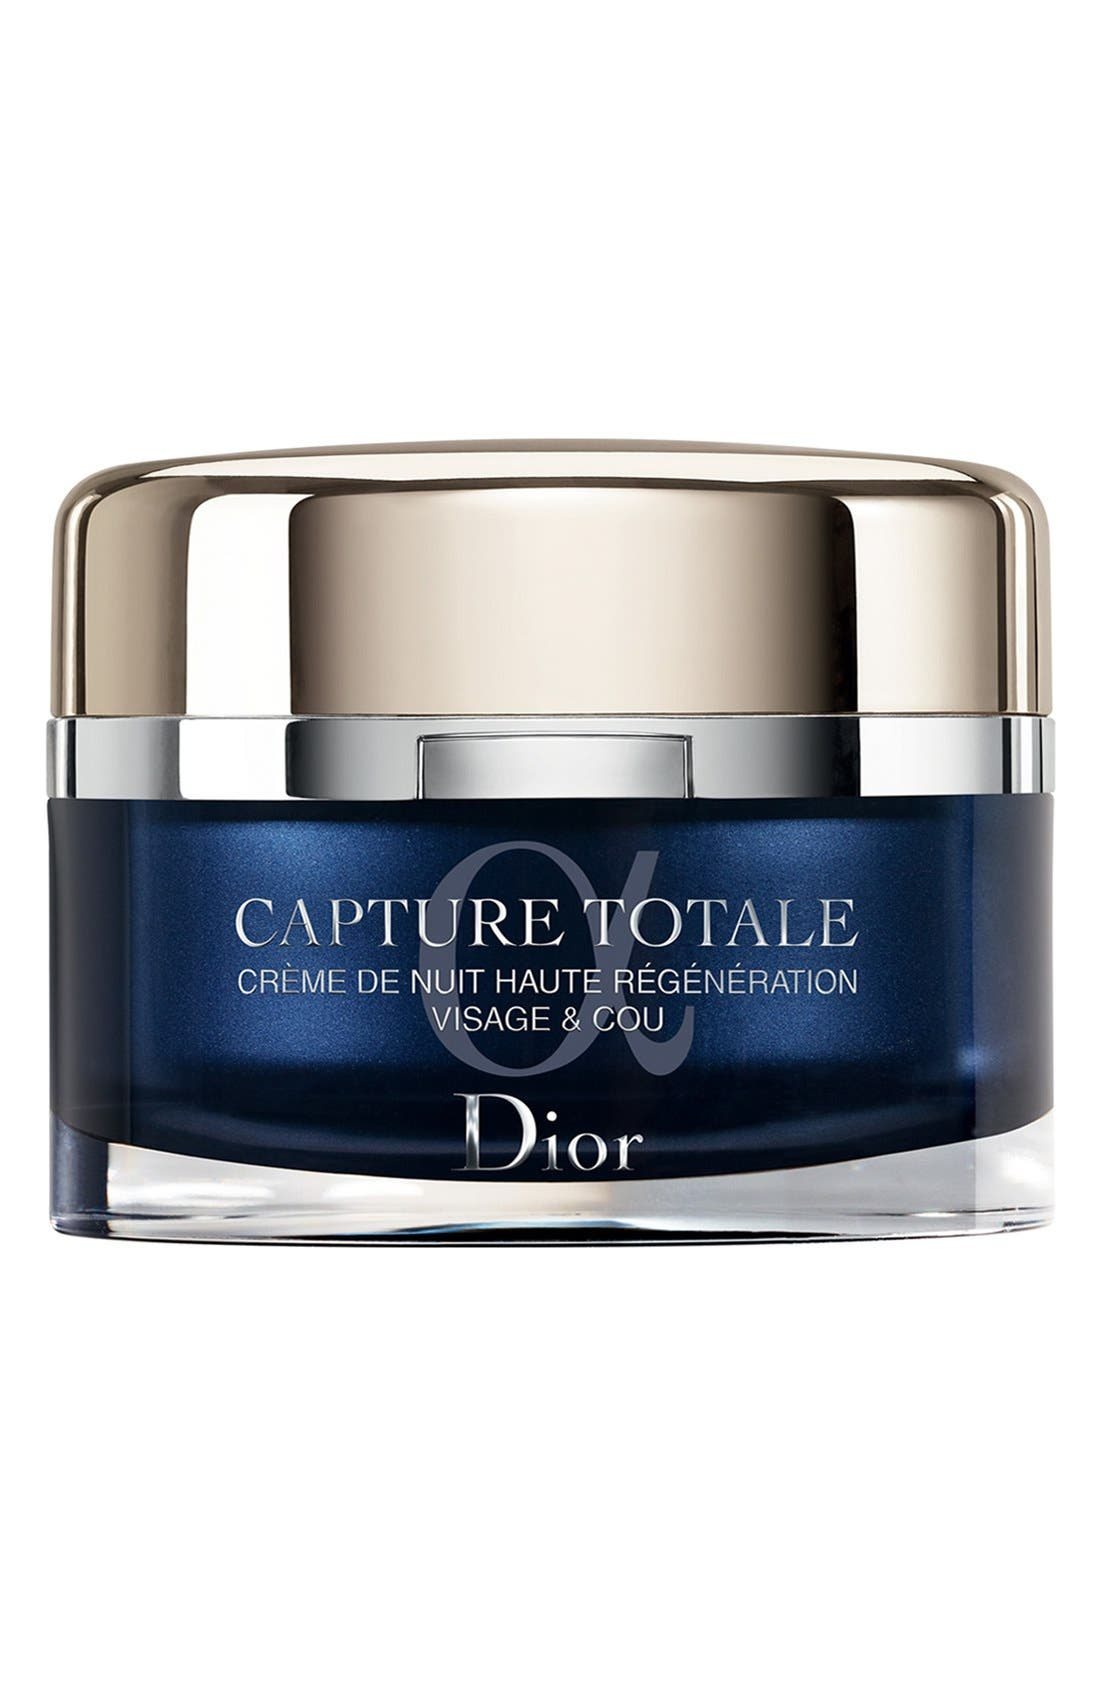 Dior 'Capture Totale' Intensive Restorative Night Crème for Face & Neck